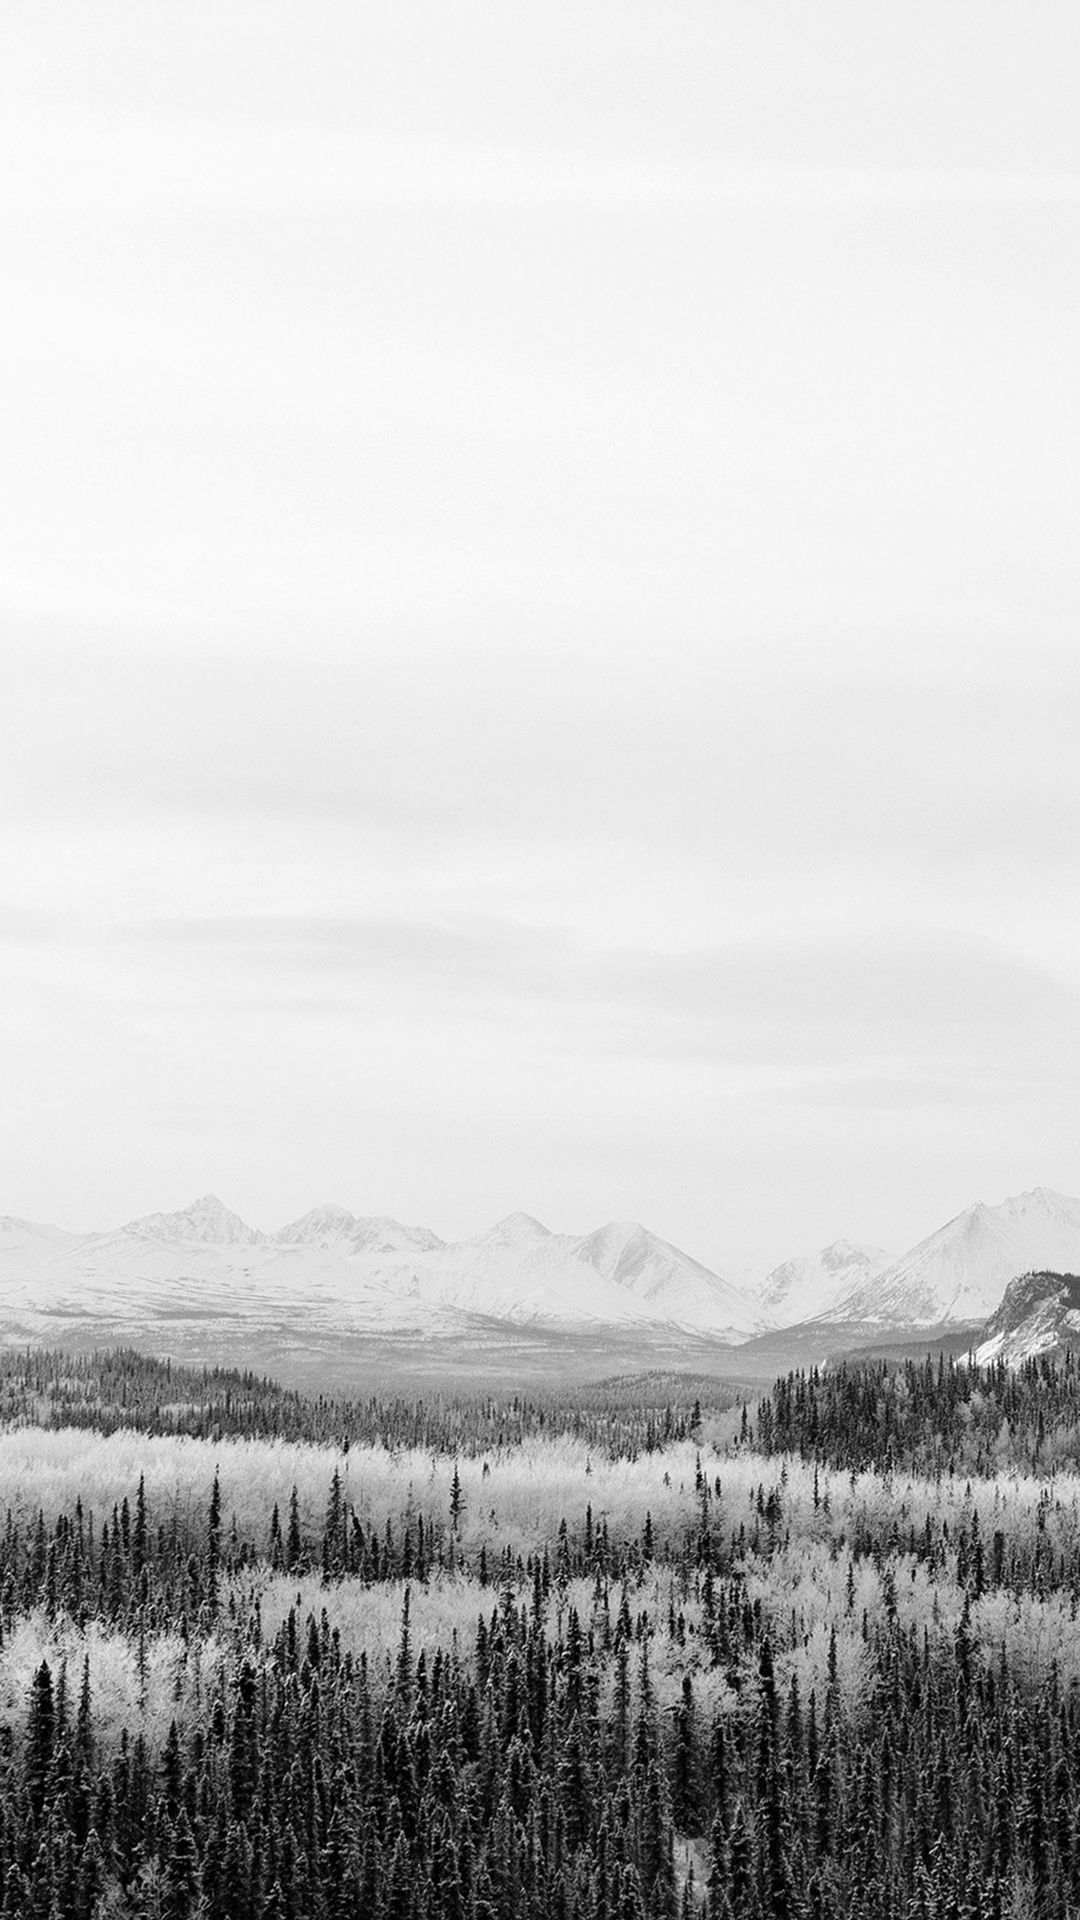 Winter Mountain Wood Nature Snow Bw Iphone 8 Wallpaper In